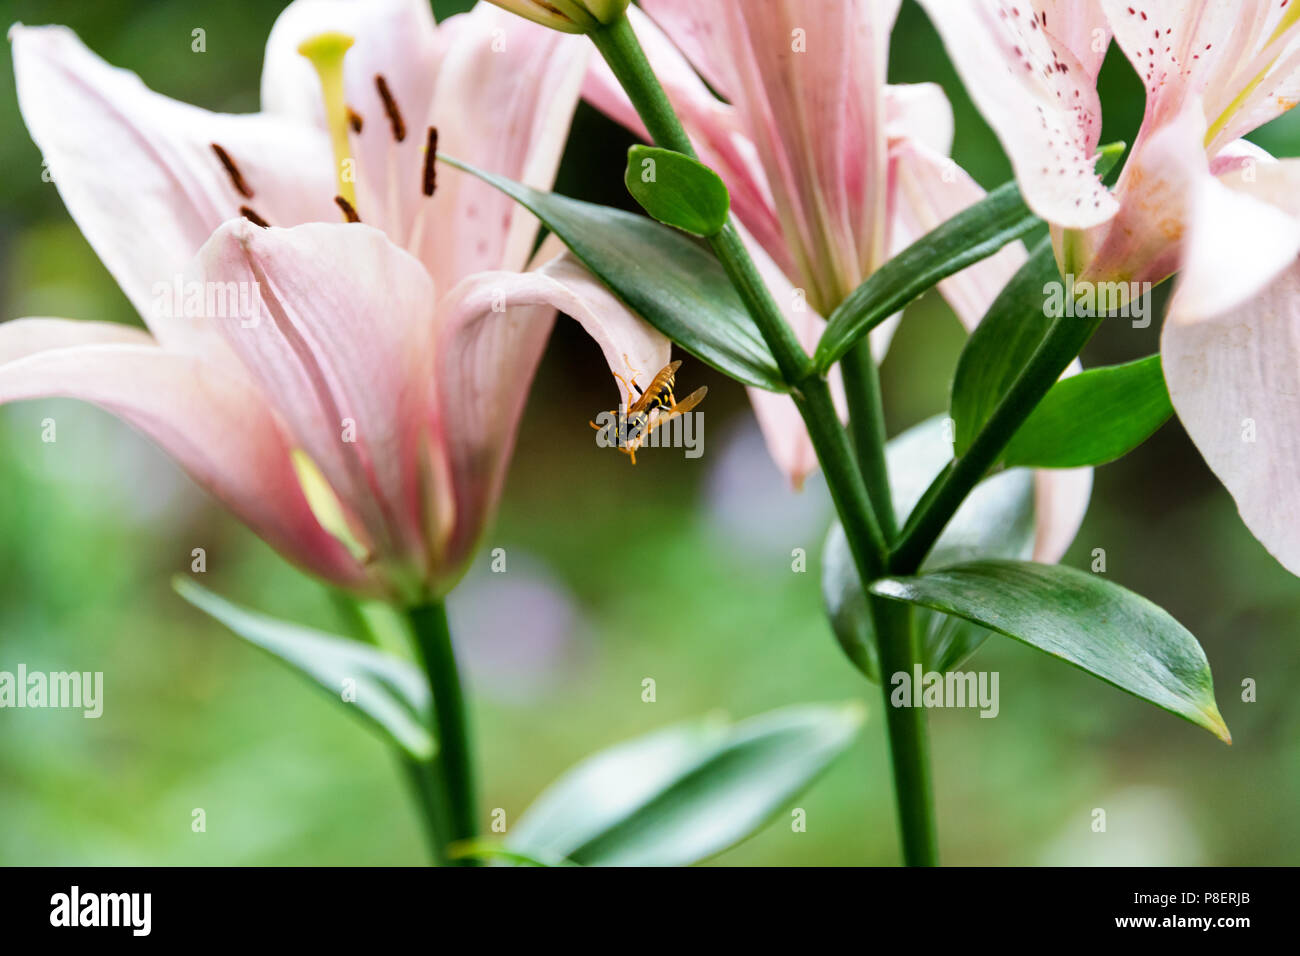 Beautiful Lily Flowers On Green Leaves Background Wasp Sits On The